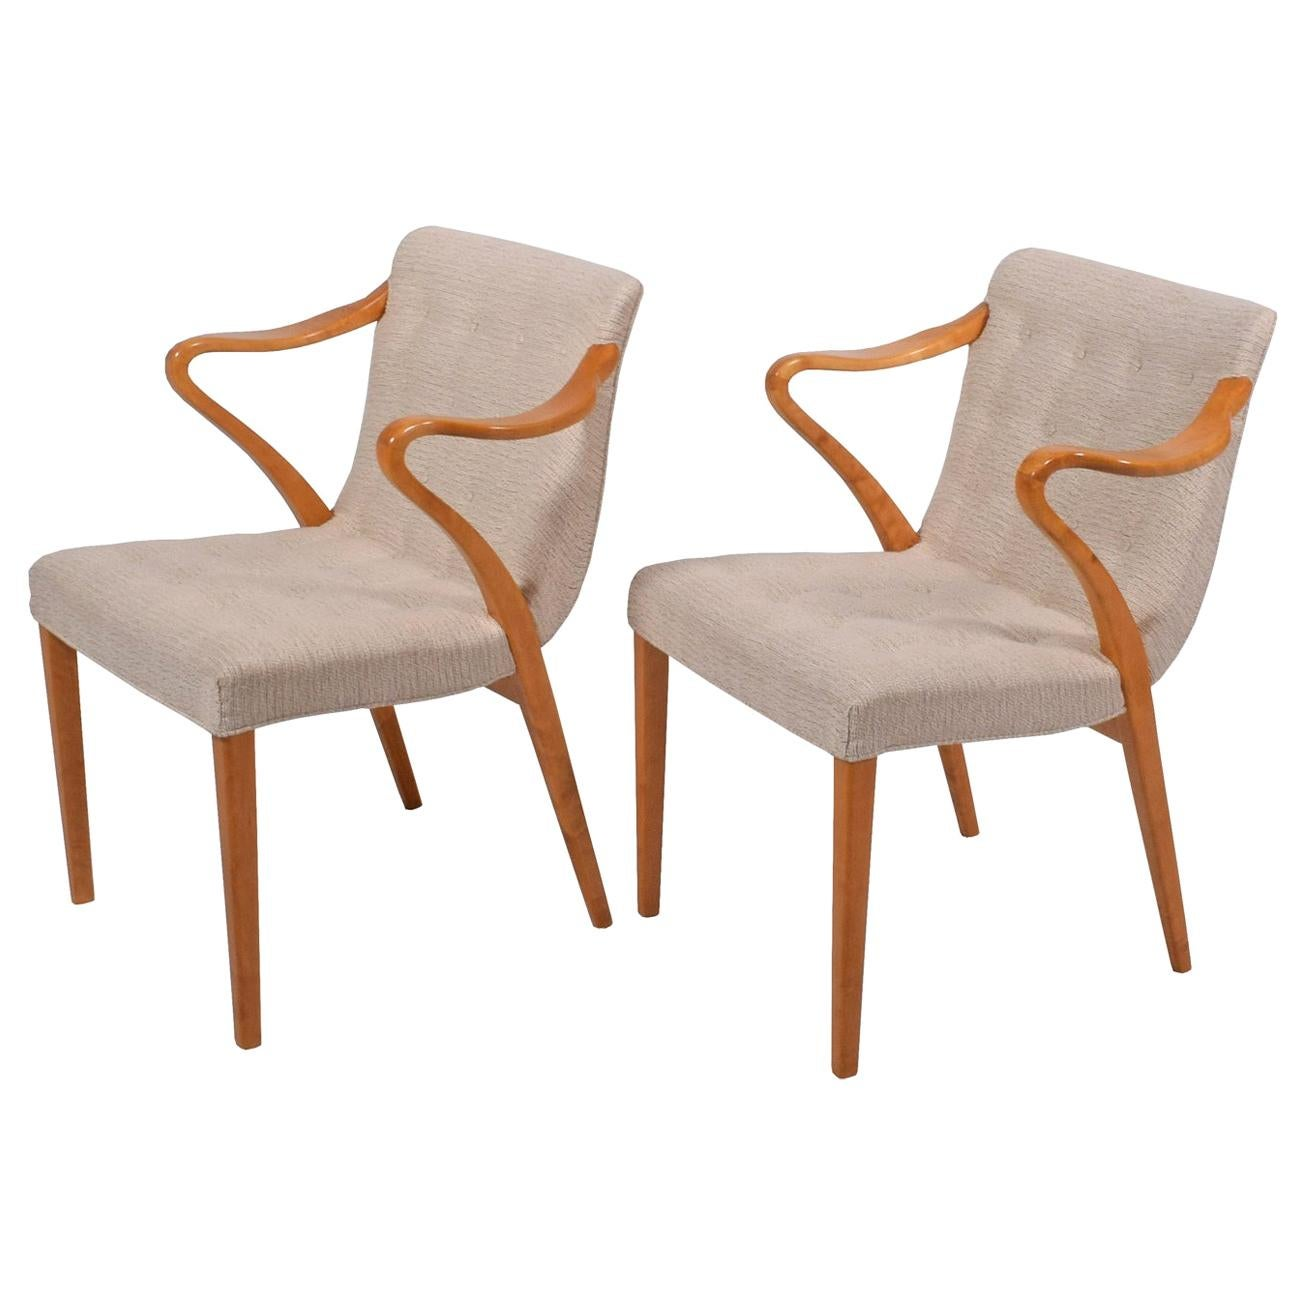 Rare Pair of Armchairs by Axel Larsson for Bodafors, 1936